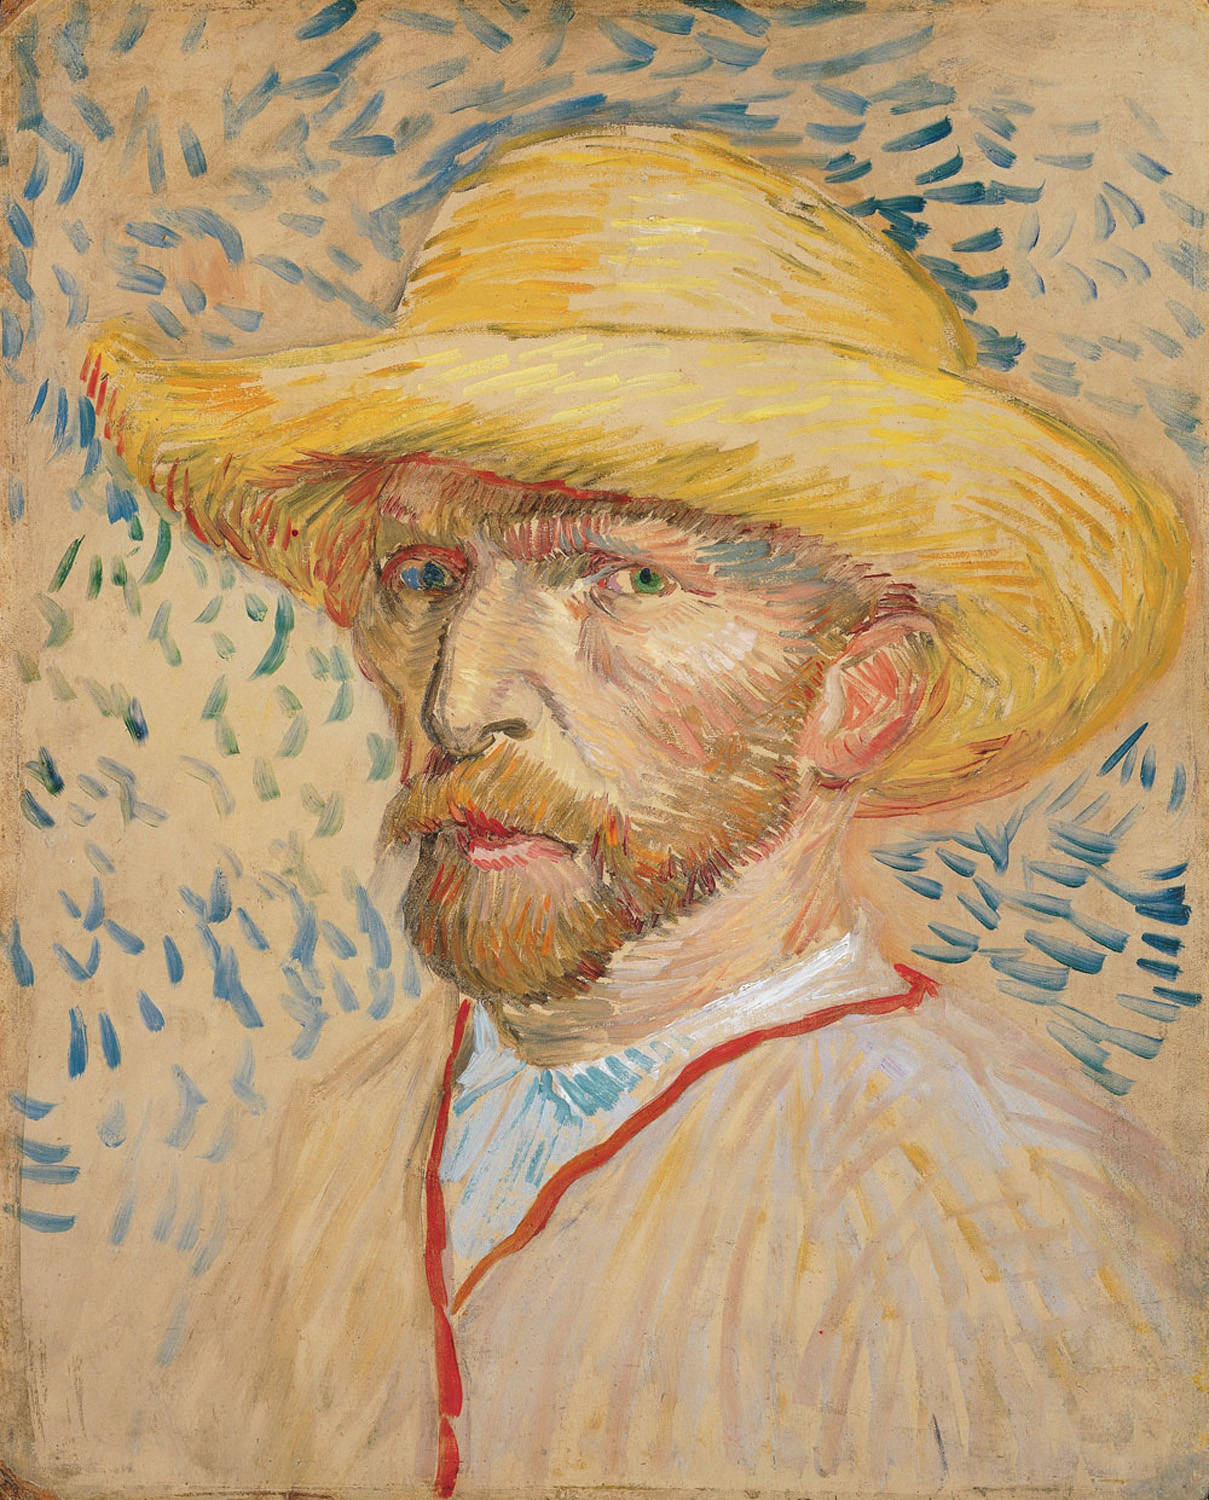 Vincent Van Gogh, Self-Portrait with a Straw Hat, 1887